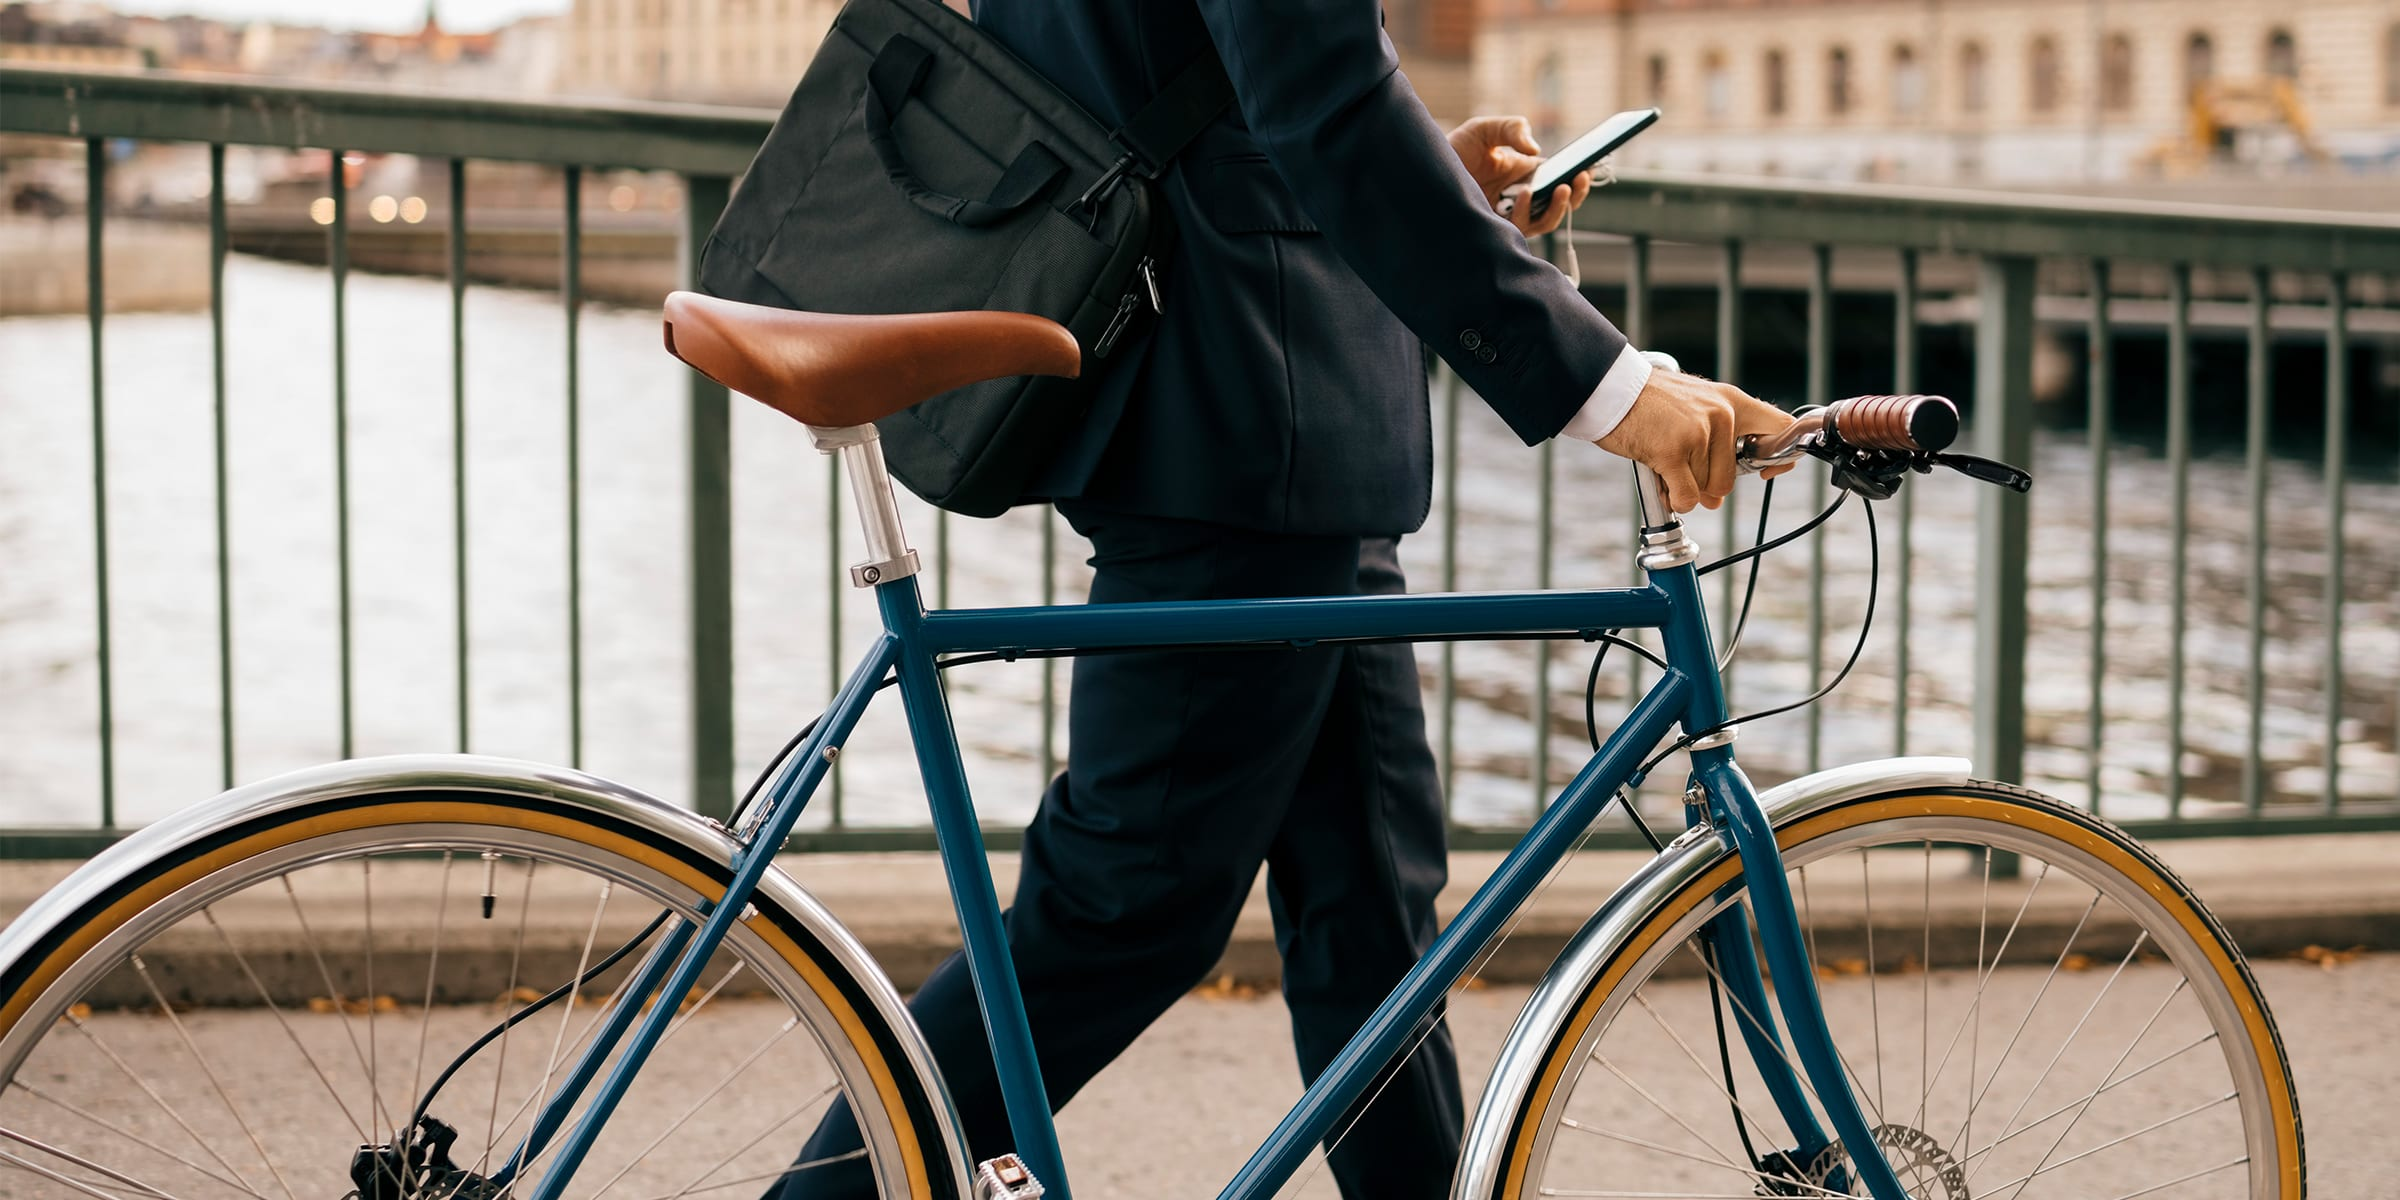 A man riding a bike to work instead of driving